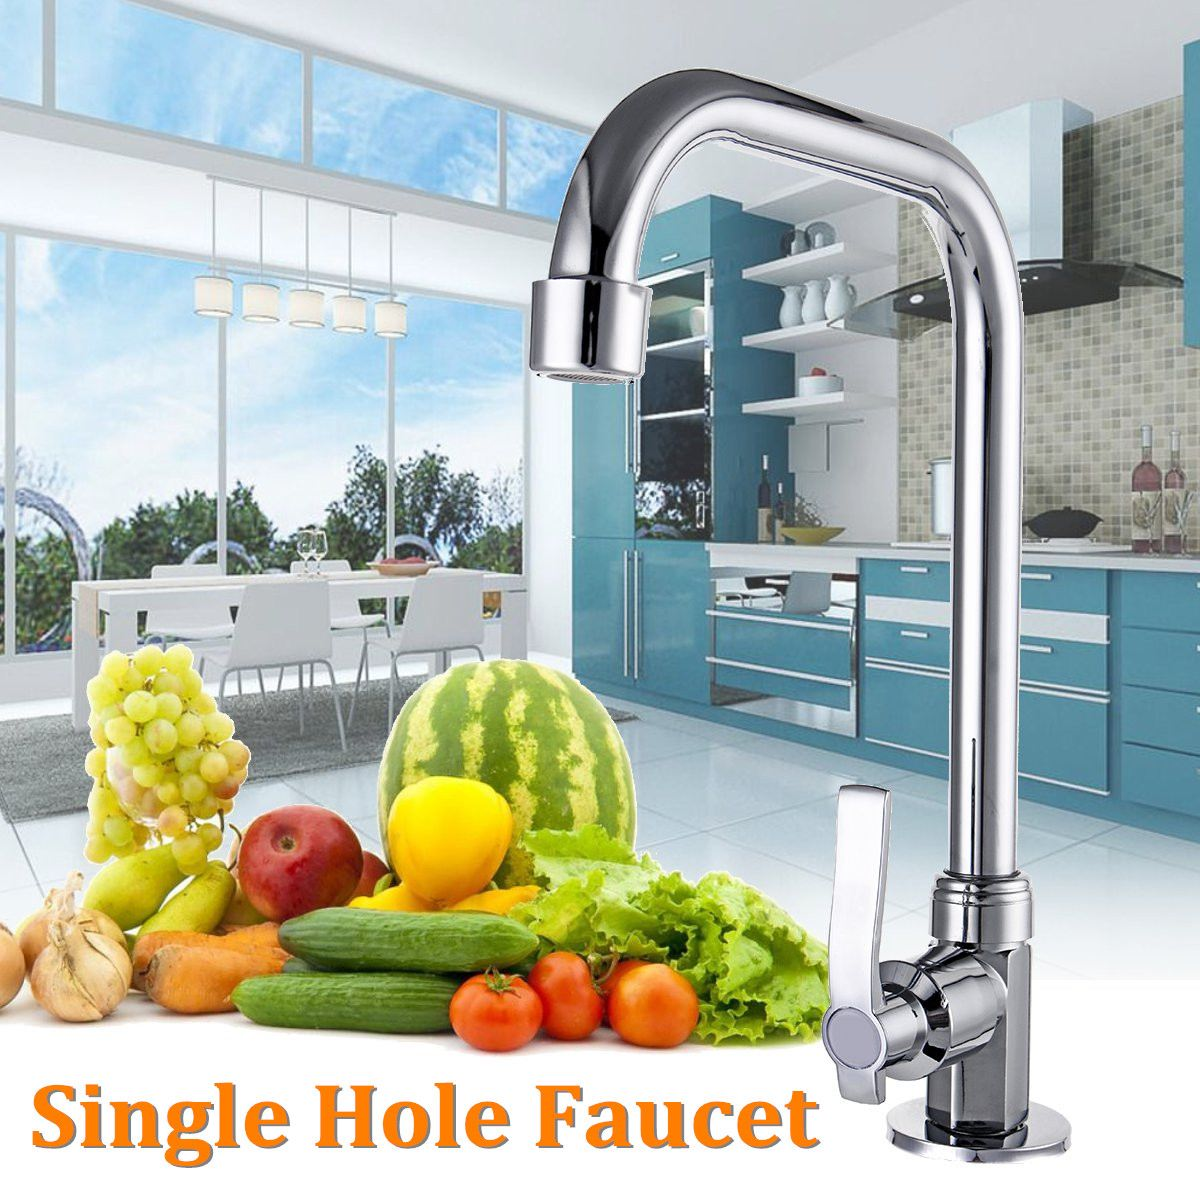 Kitchen Vertical Single Hole Faucet Stainless Steel Kitchen Wash Sink Basin Water Taps Mixer Rotating Basin Faucet Quick Opening